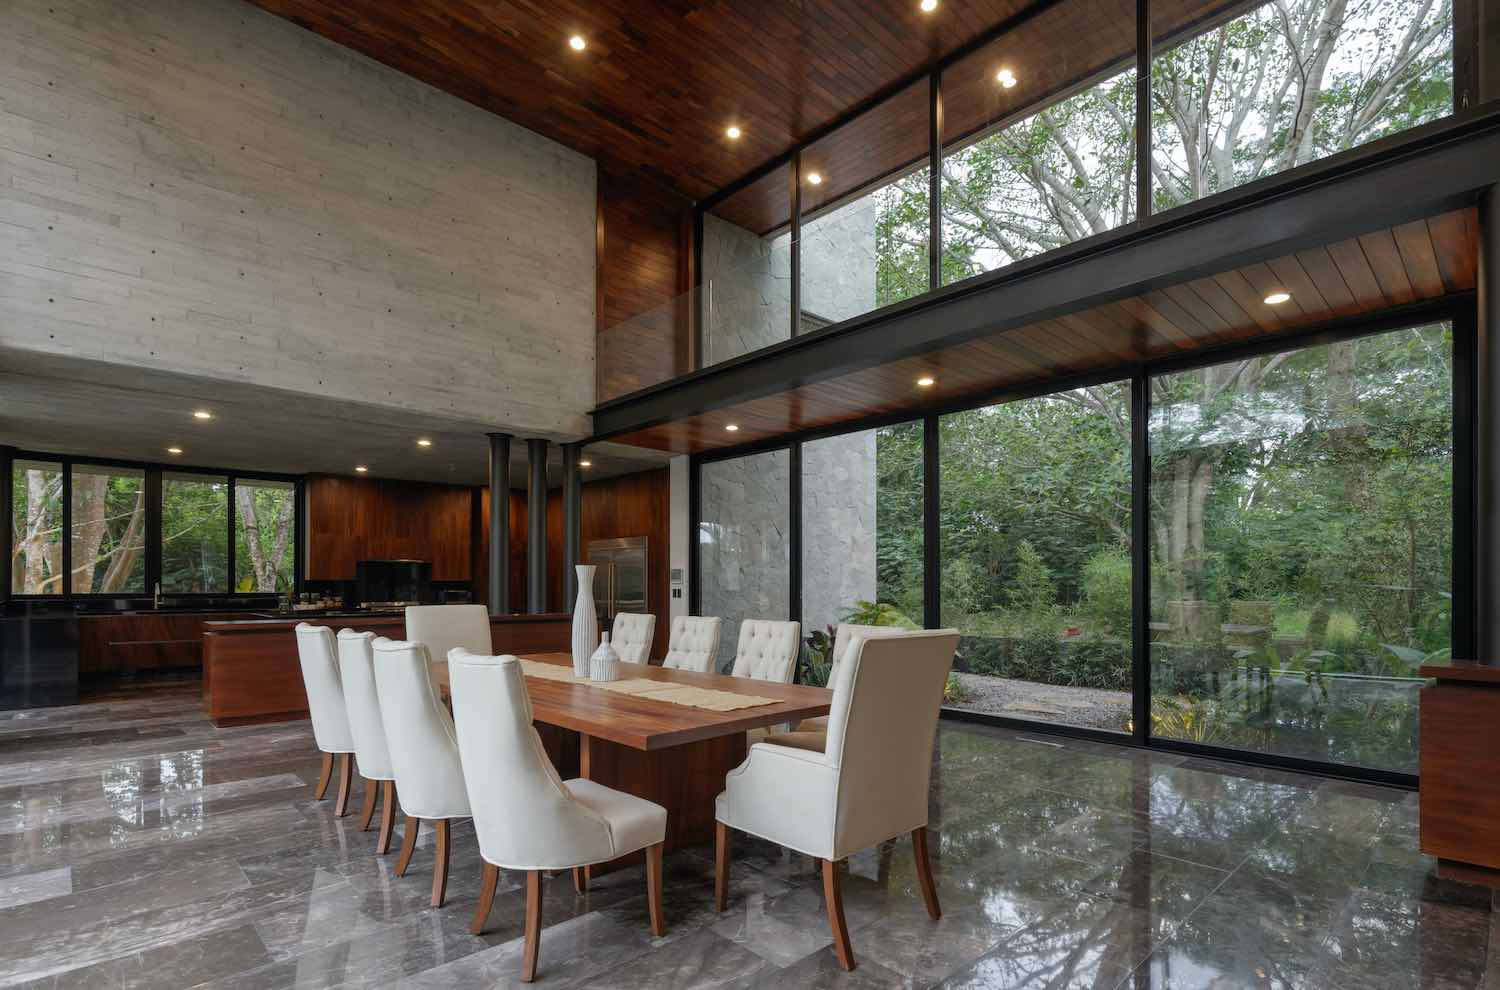 dining area with spectacular nature view though large glass walls